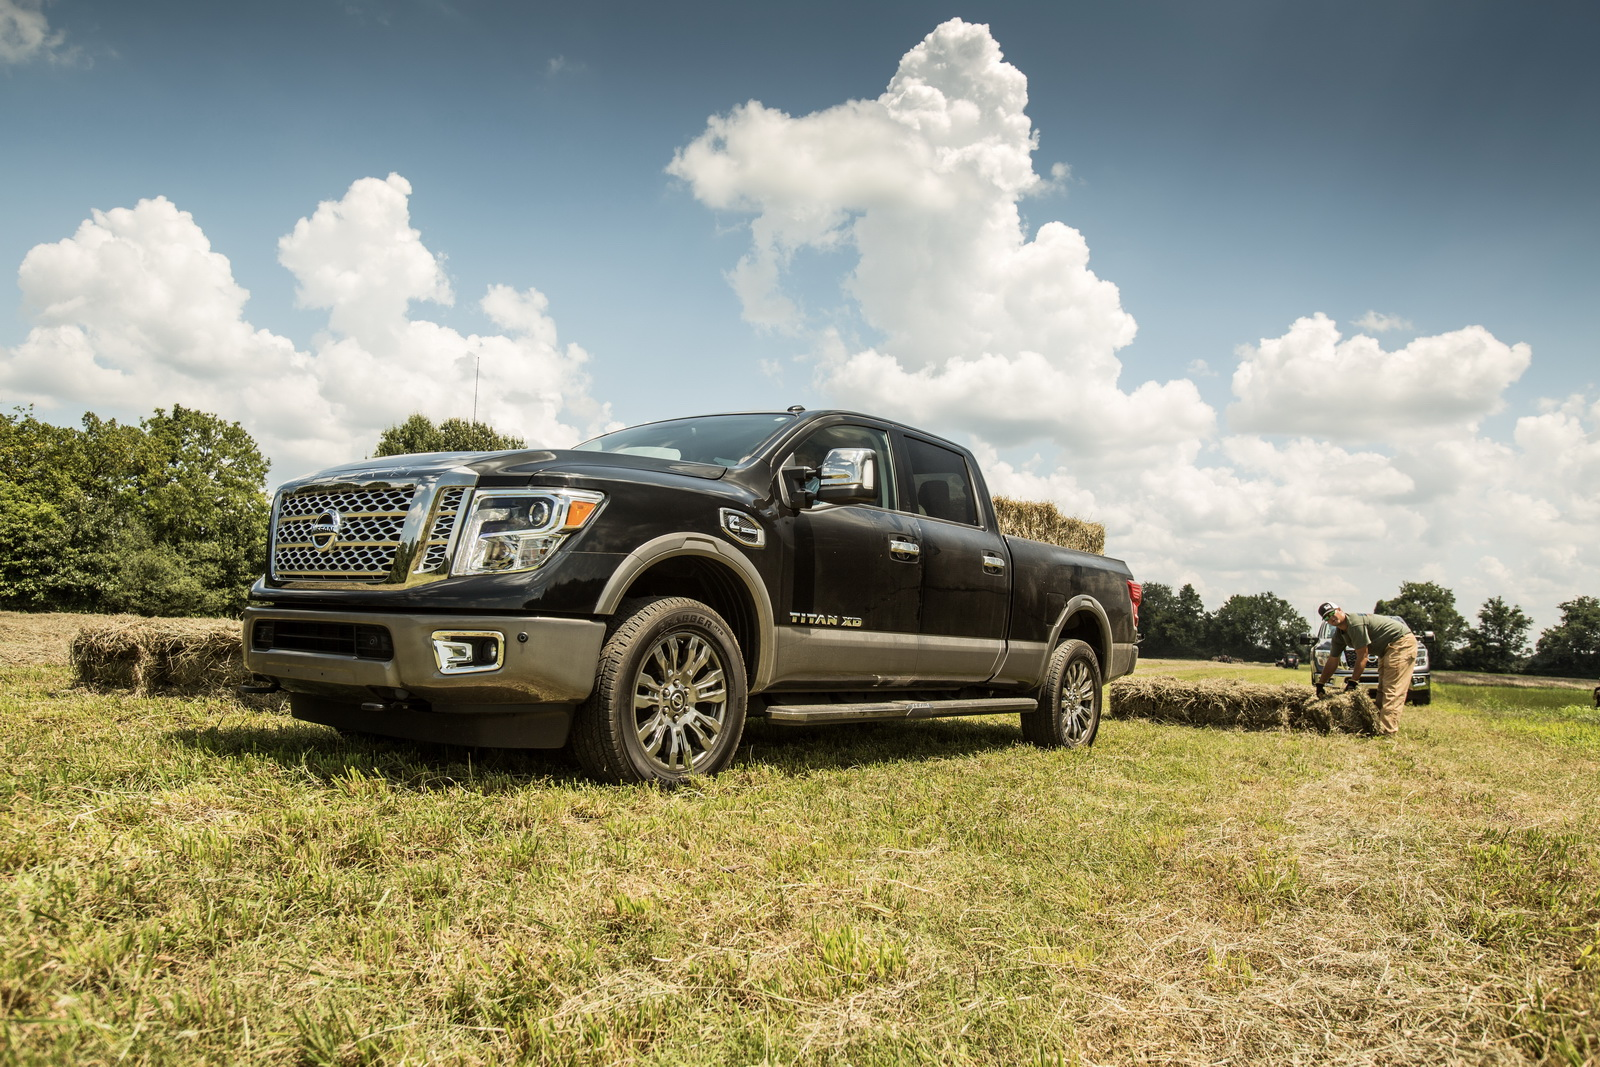 2018 nissan titan priced from 31 075 titan xd from 40 015 carscoops. Black Bedroom Furniture Sets. Home Design Ideas